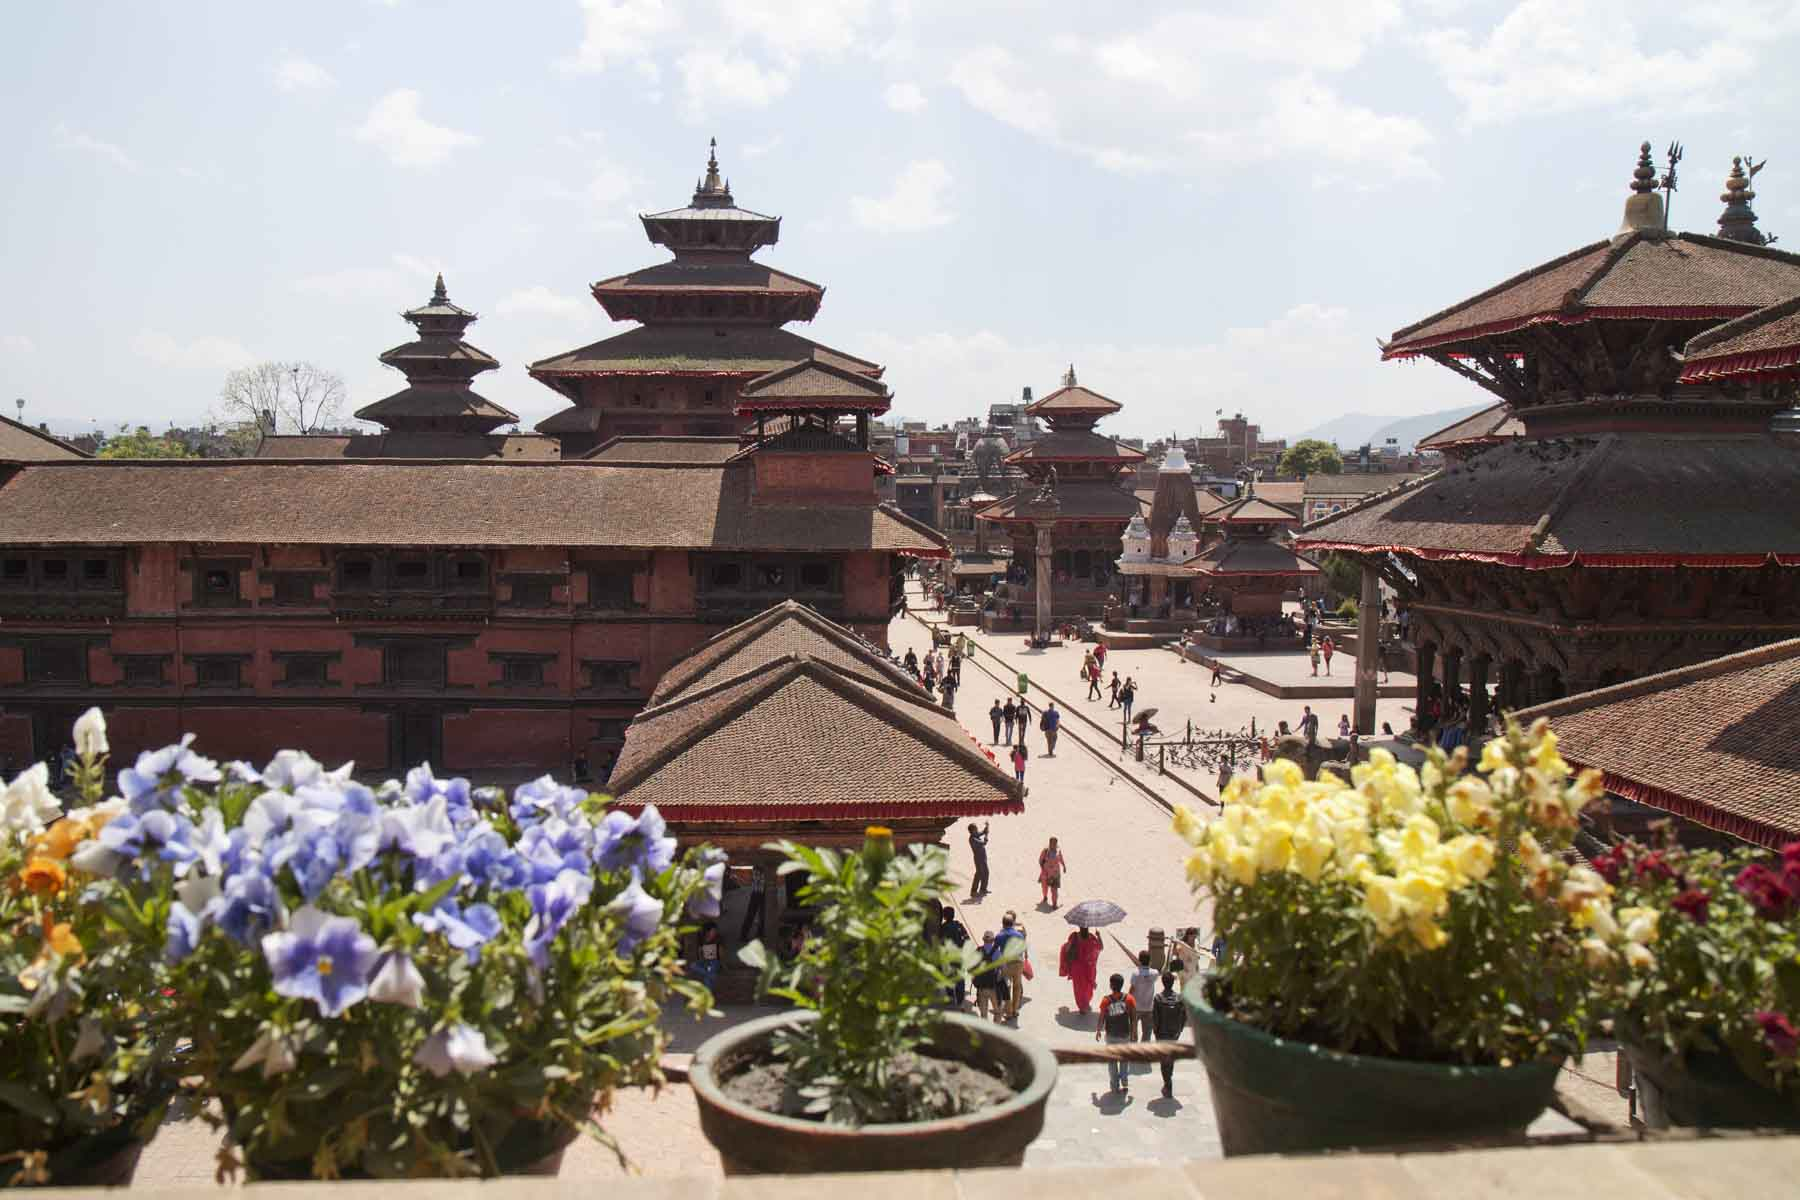 View of Patan Durbar Square from Cafe du Temple, Kathmandu